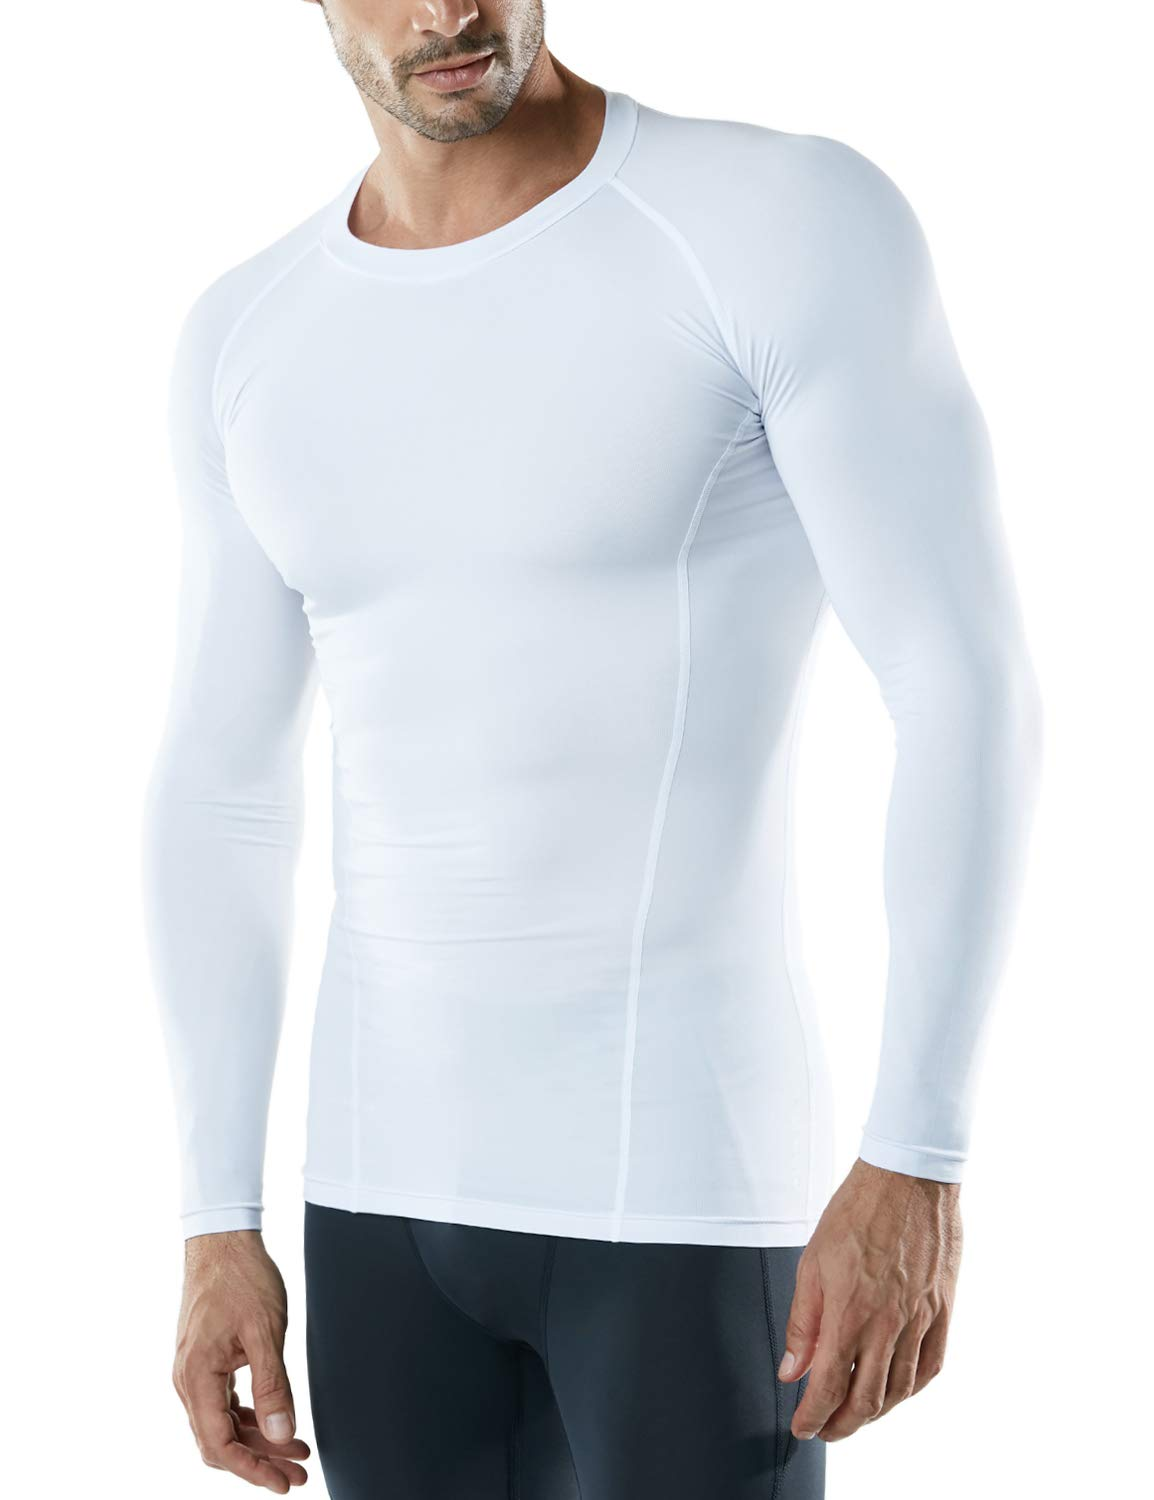 ATHLIO AO-BLS01-WHT_Large Men's (Pack of 3) Cool Dry Compression Long Sleeve Baselayer Athletic Sports T-Shirts Tops BLS01 by ATHLIO (Image #2)